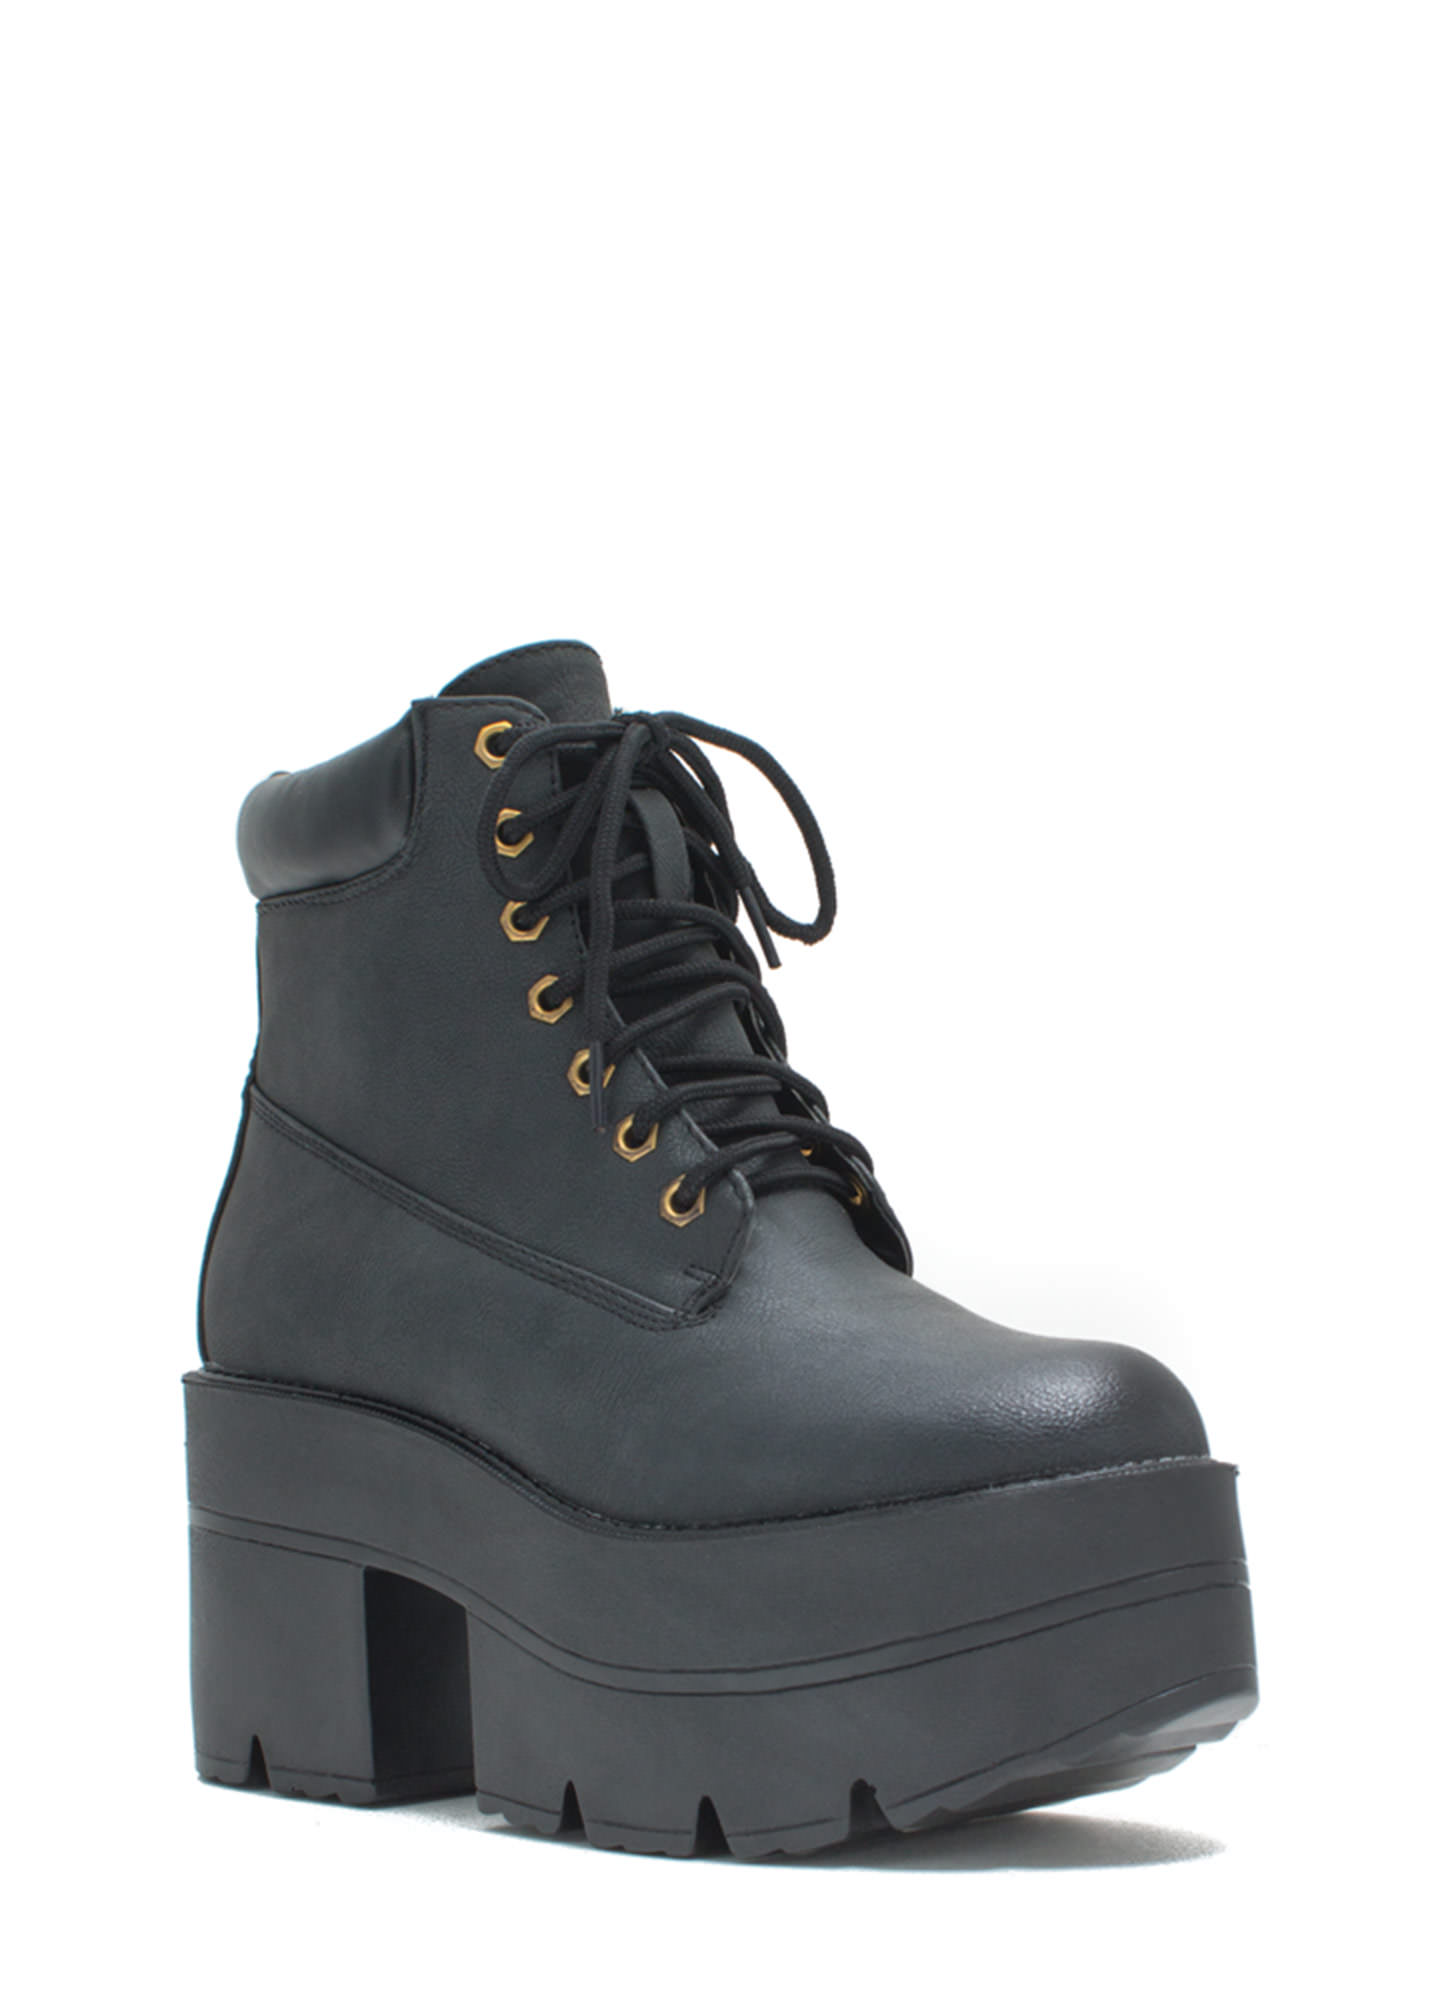 Take Over Lace-Up Platform Boots BLACK